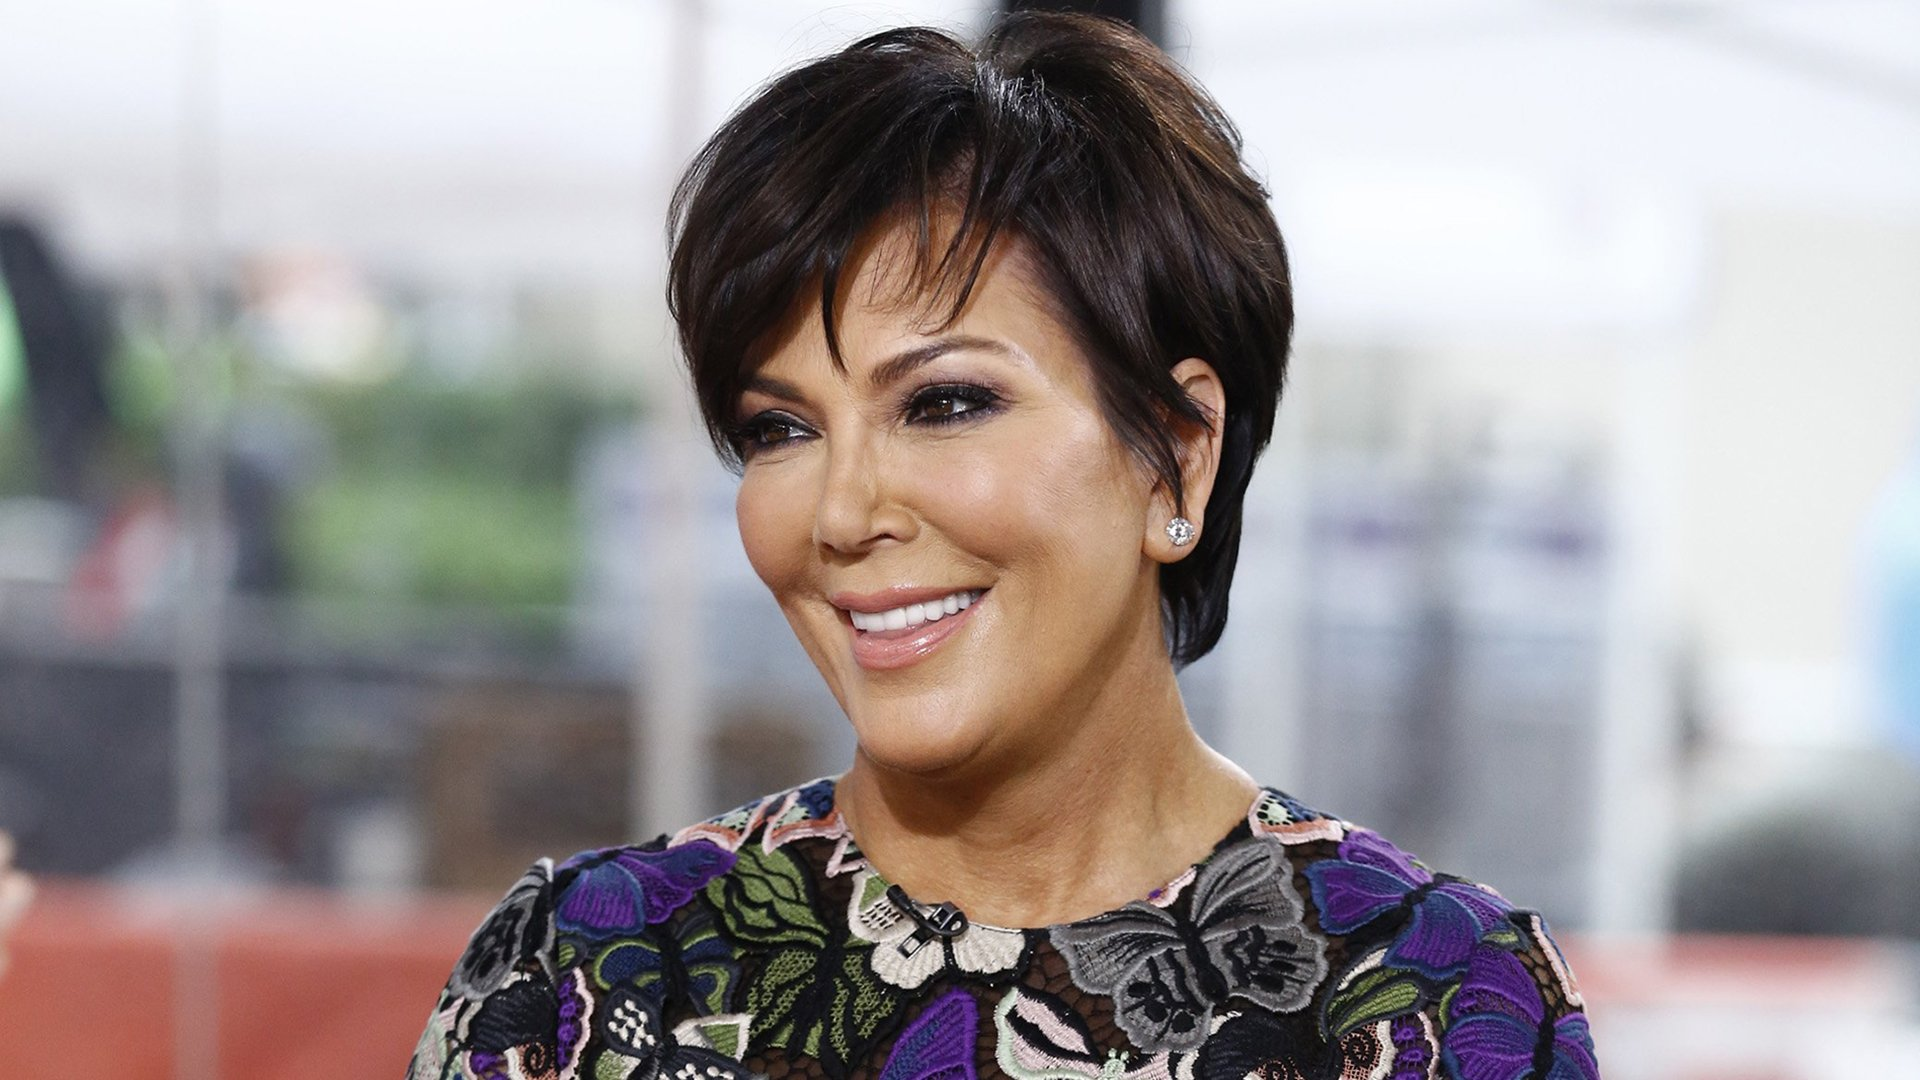 """TODAY -- Pictured: Kris Jenner appears on NBC News' """"Today"""" show -- (Photo by: Peter Kramer/NBC/NBC NewsWire via Getty Images)"""